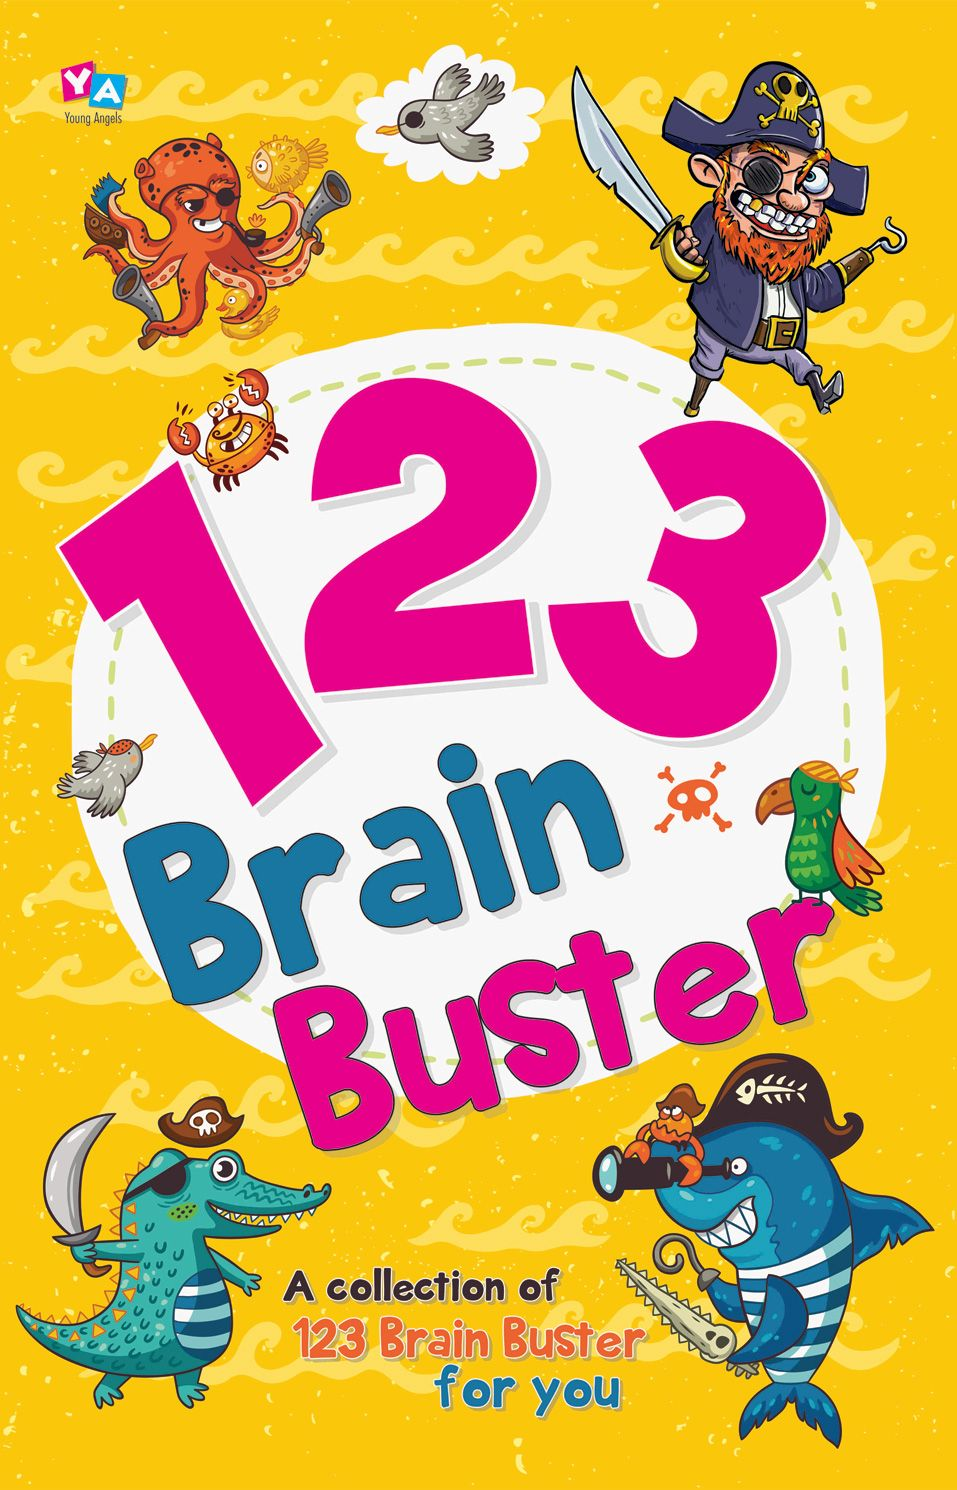 123 Brain Buster. Rs90/ 1 2 3 brain buster is a rich